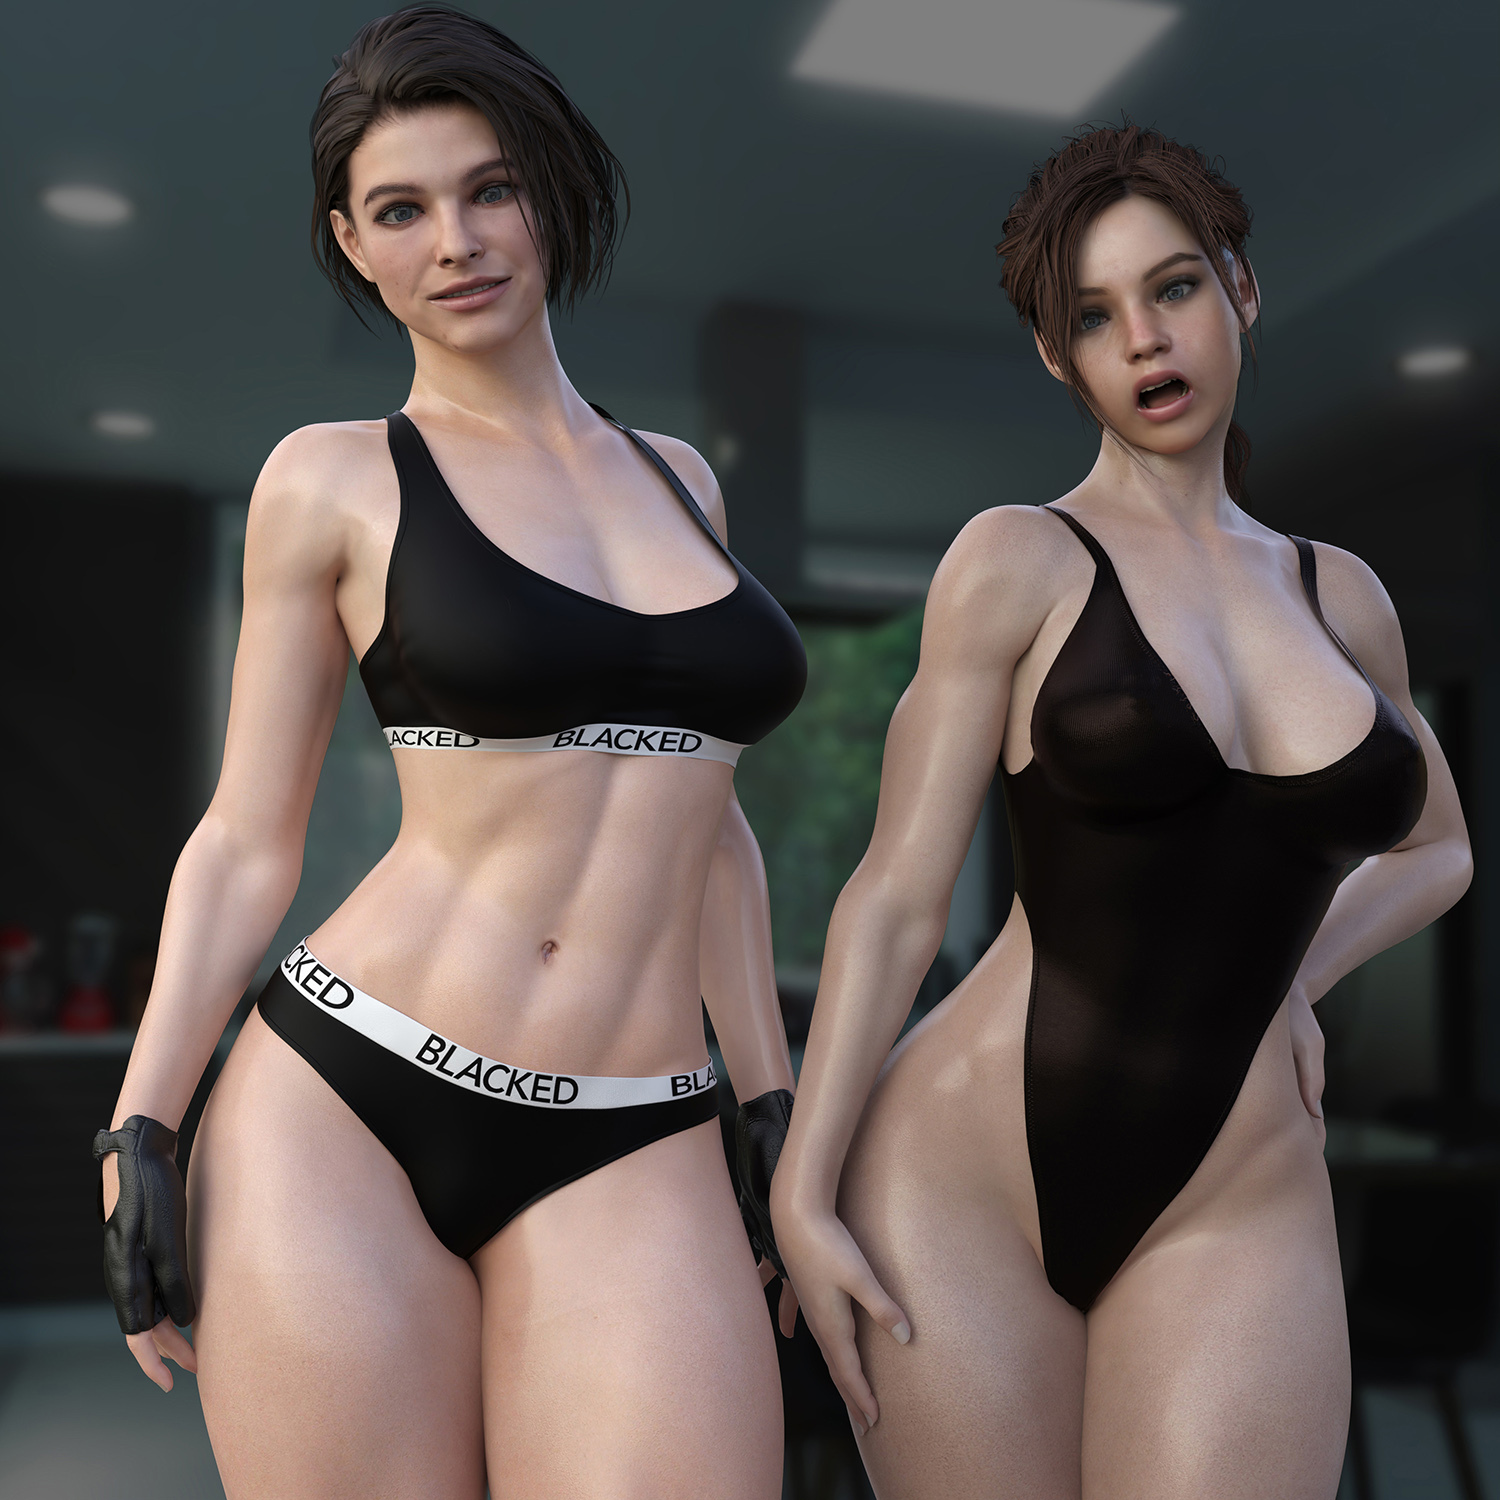 Jill & Claire - Blacked